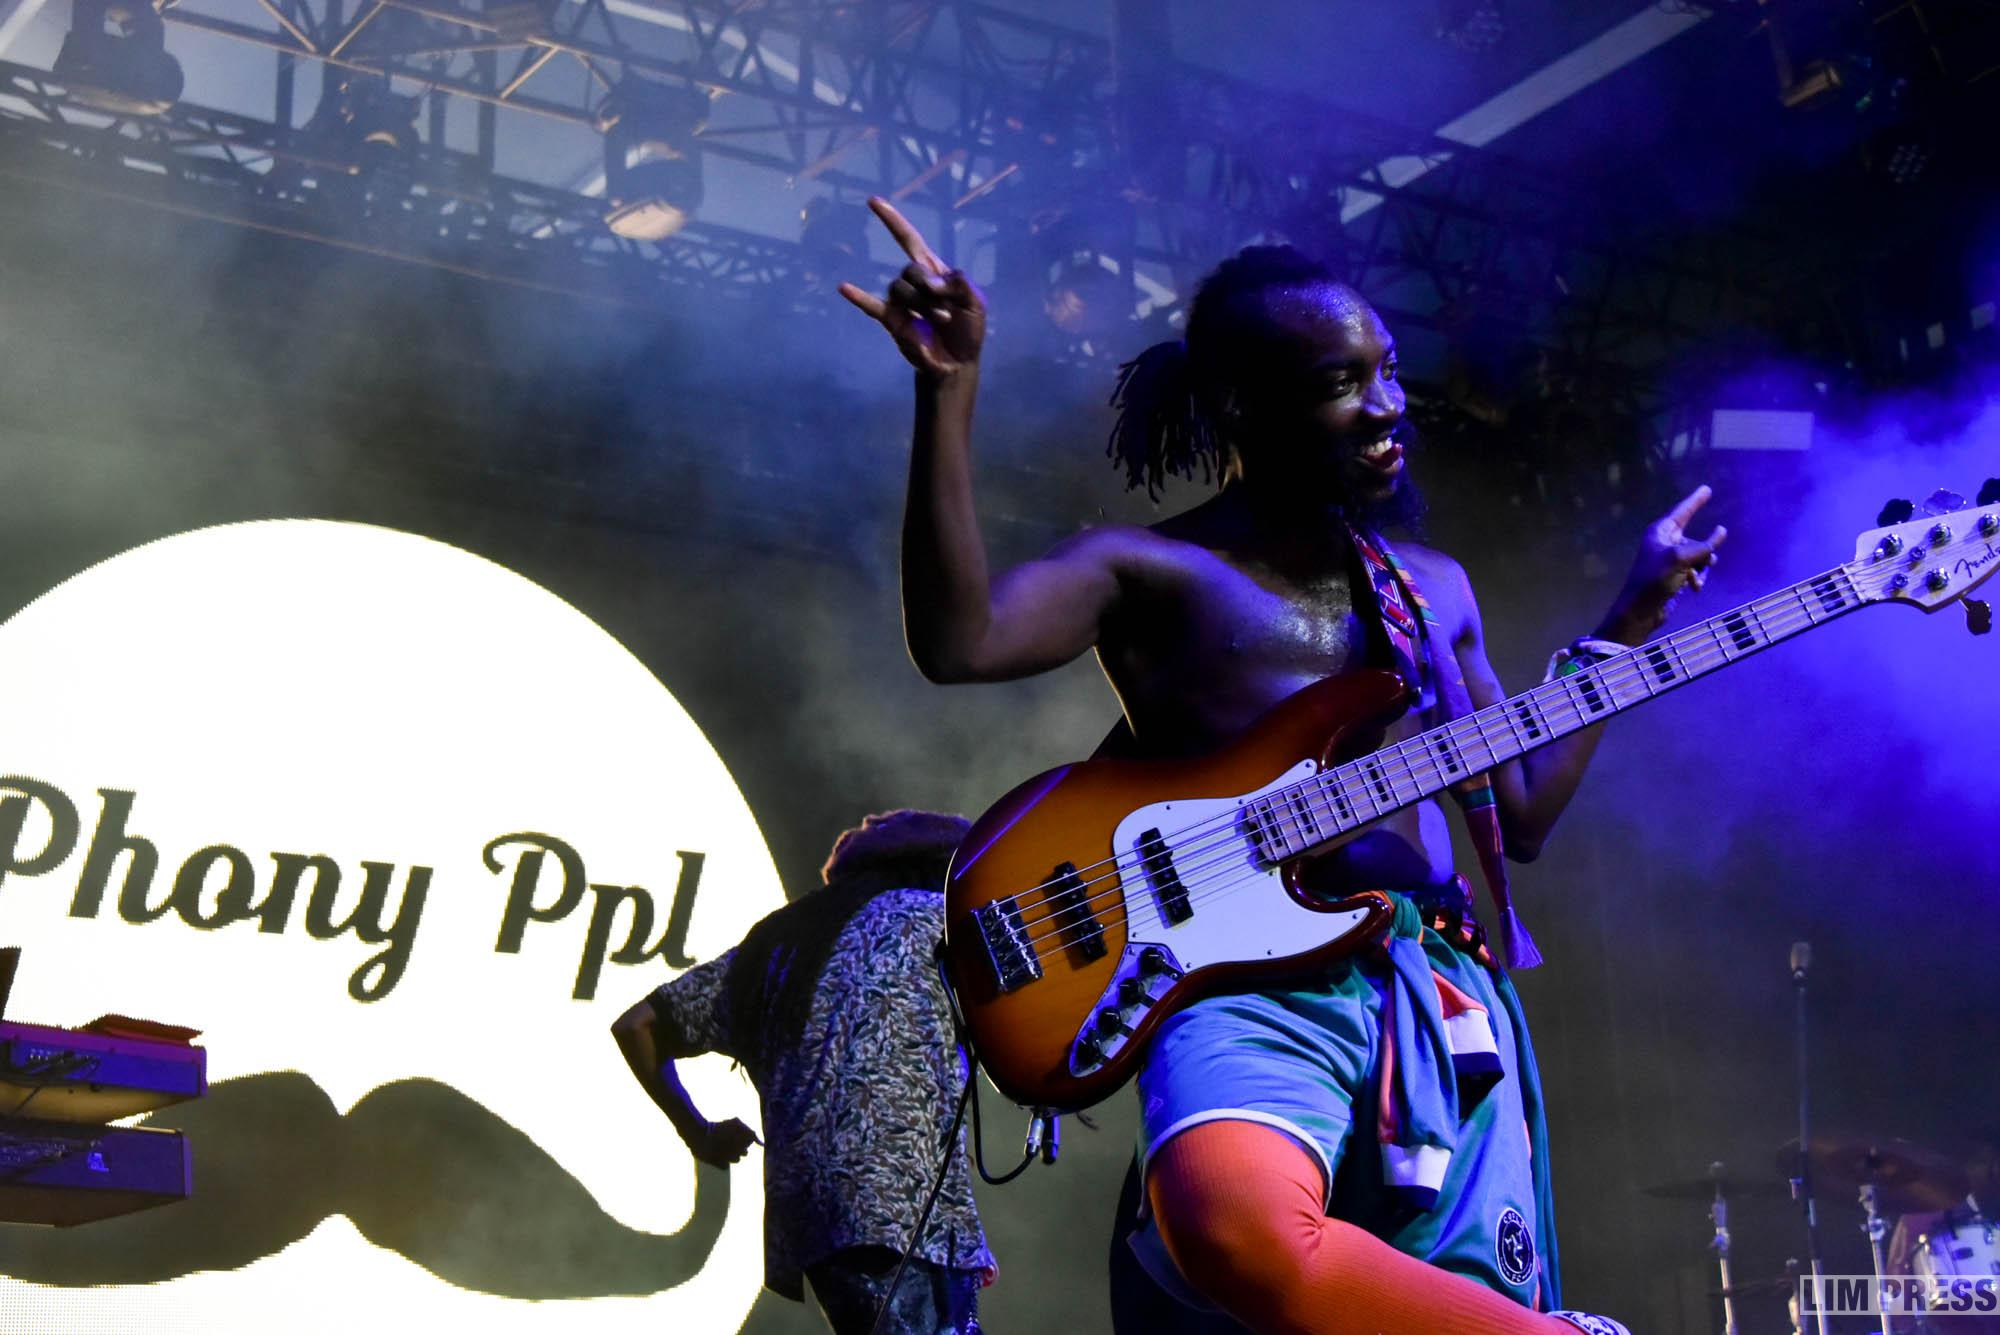 PHONY PPL | FUJI ROCK FESTIVAL | 2019.07.28